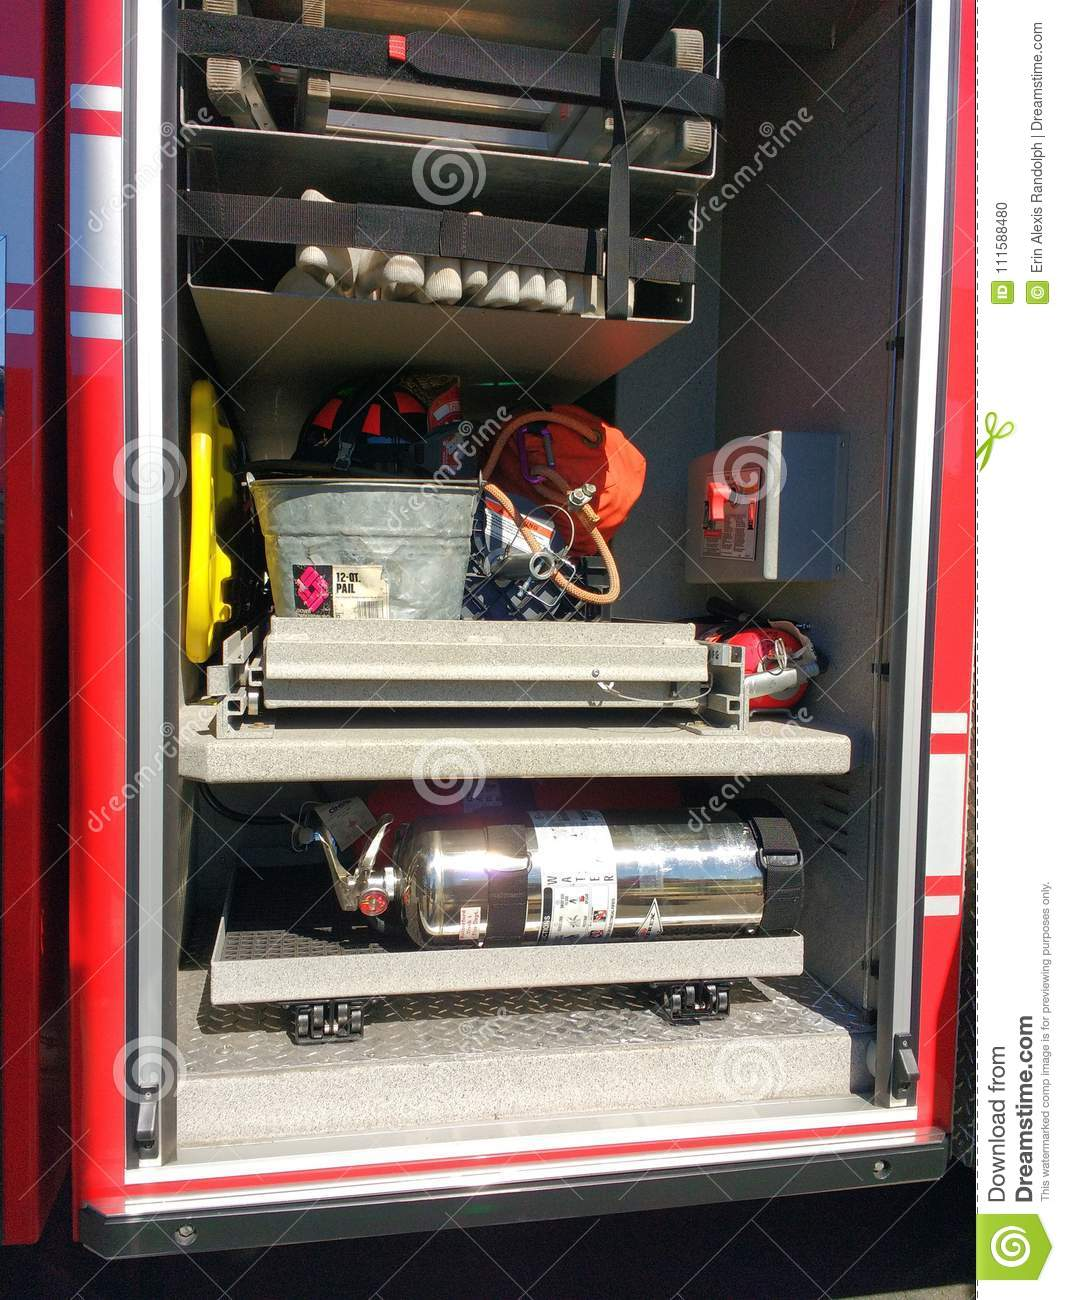 Firefighting Equipment in a Fire Truck, Rutherford, NJ, USA